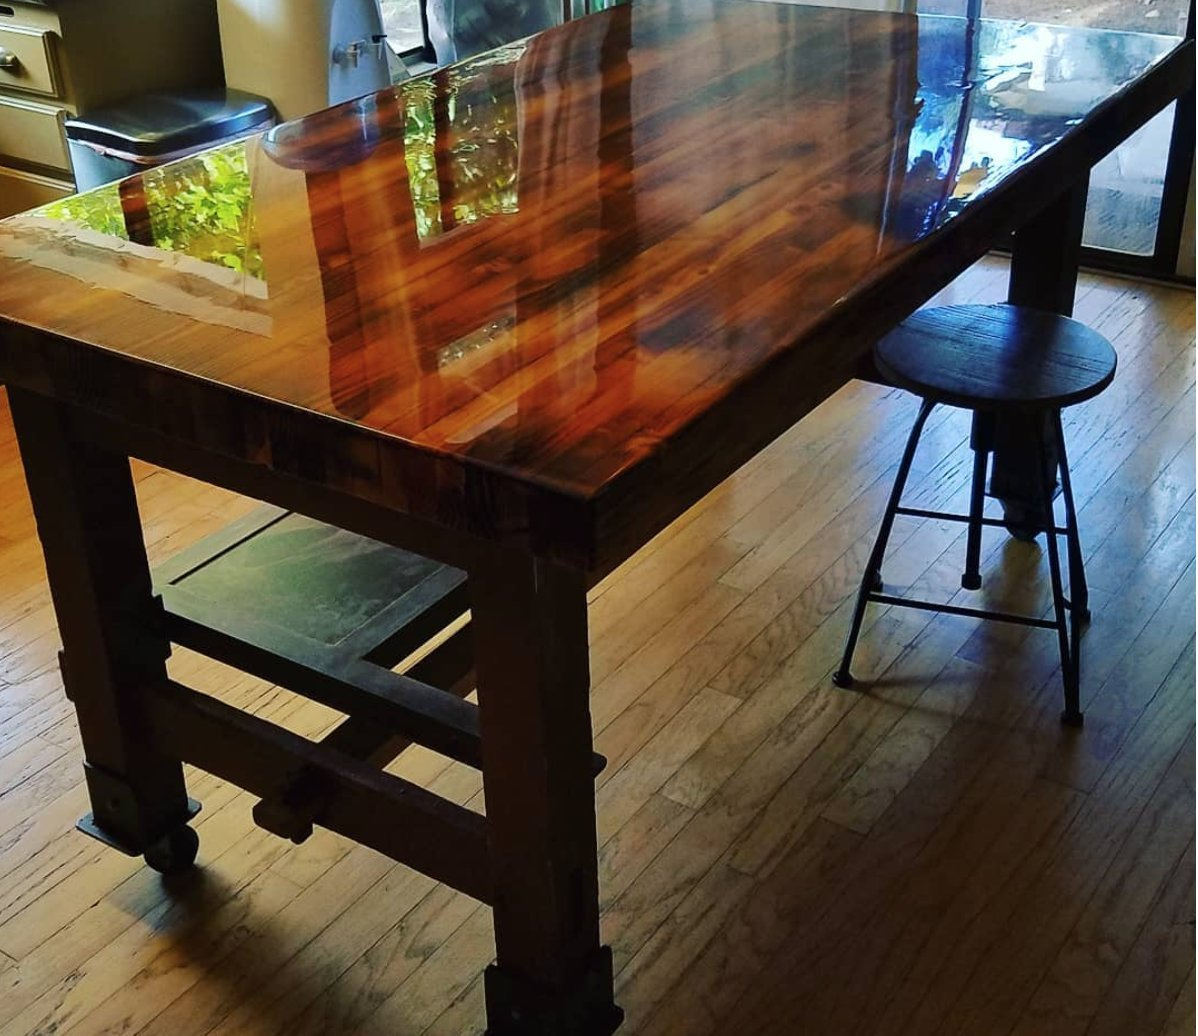 Crystal Clear Bar Table Top Epoxy Resin Coating For Wood Tabletop - 2 Quart  Kit